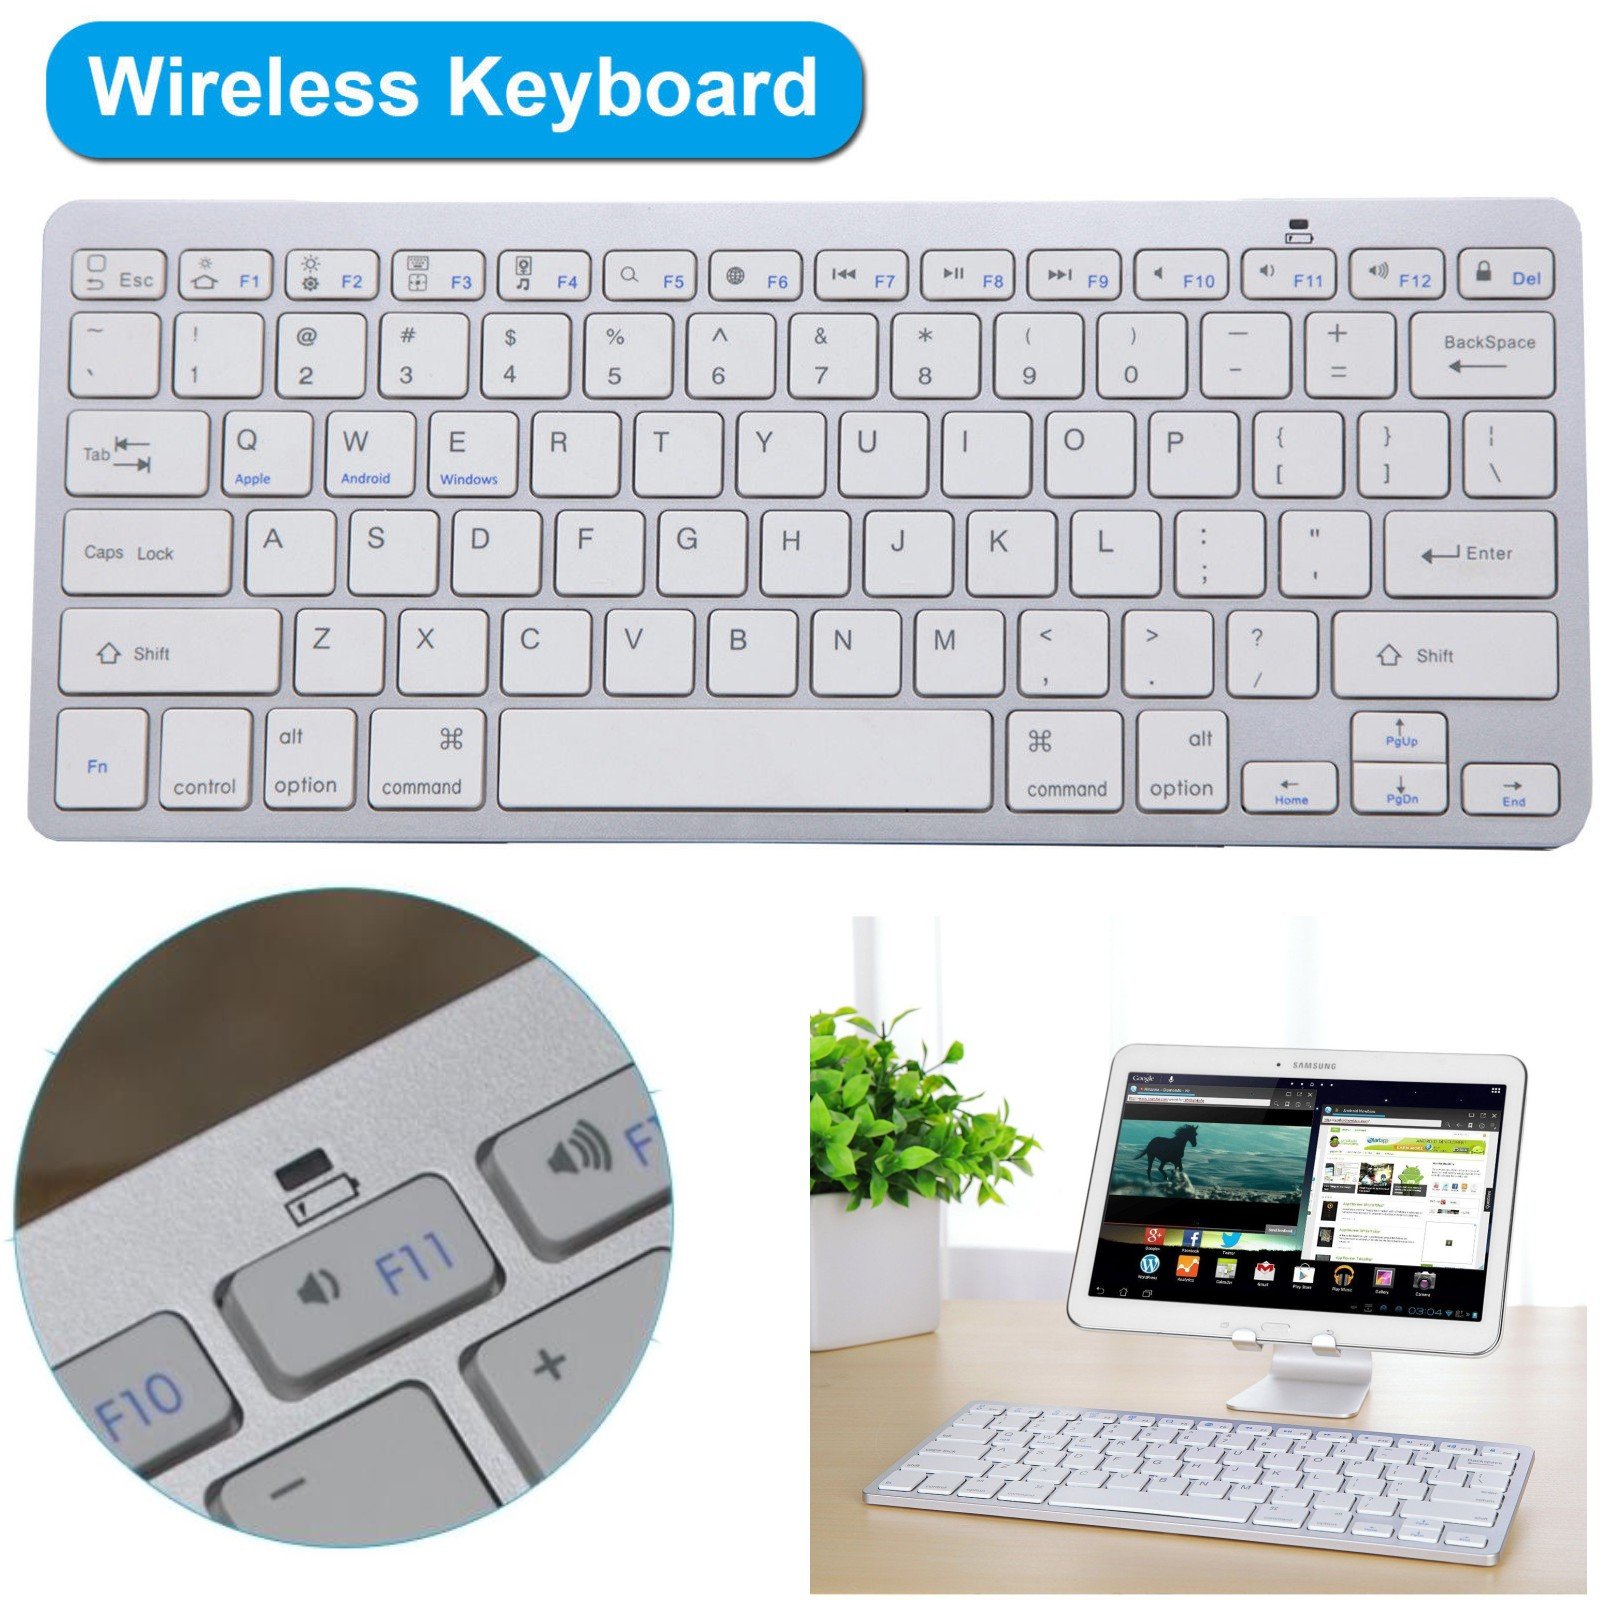 Details about Slim Wireless Keyboard for For iOS Android Windows Mac OS PC  Tablet Smartphone